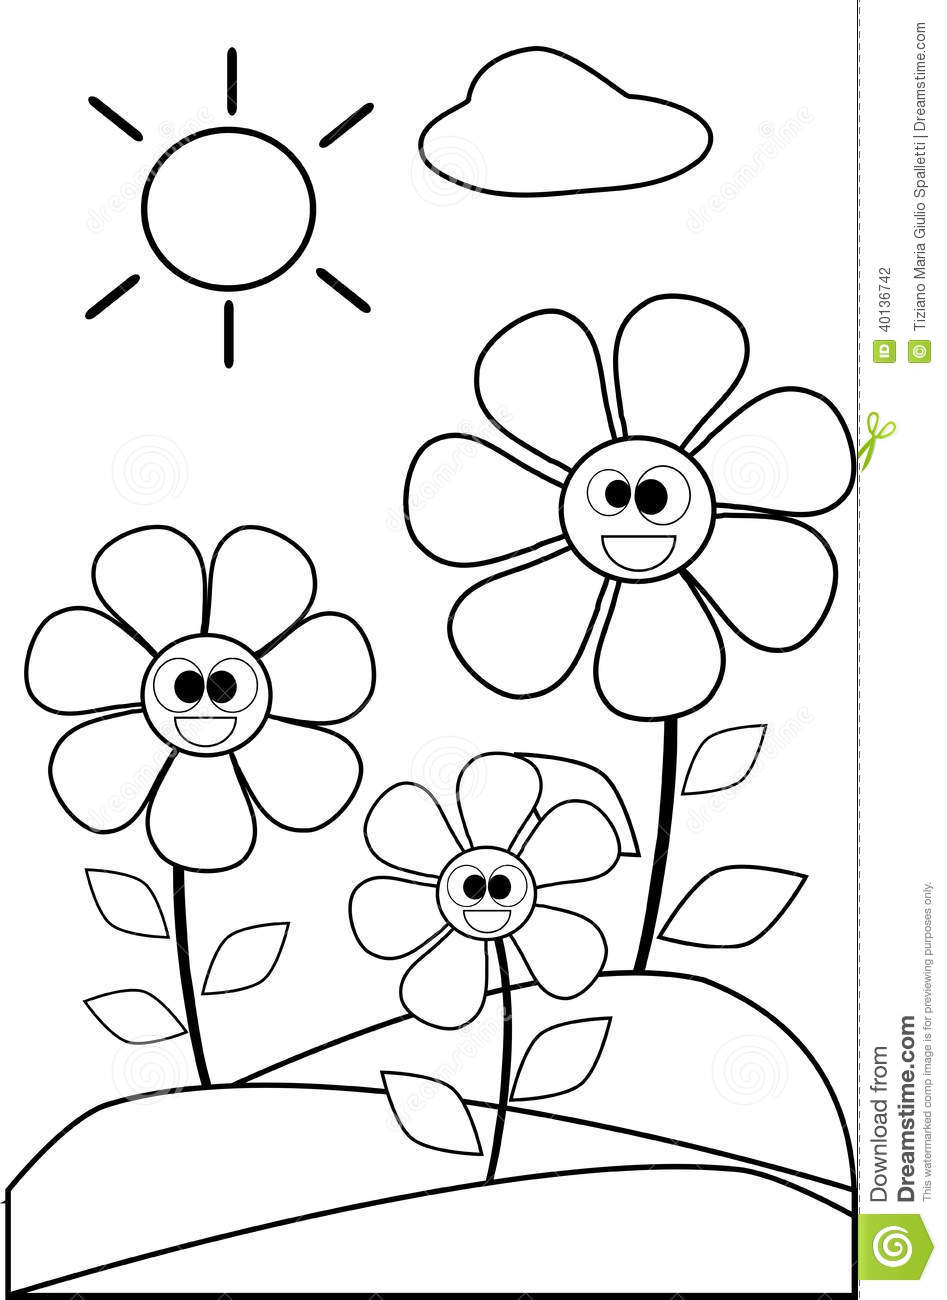 coloring flower clipart black and white magnolia flower black and white coloring book page stock and flower black clipart white coloring